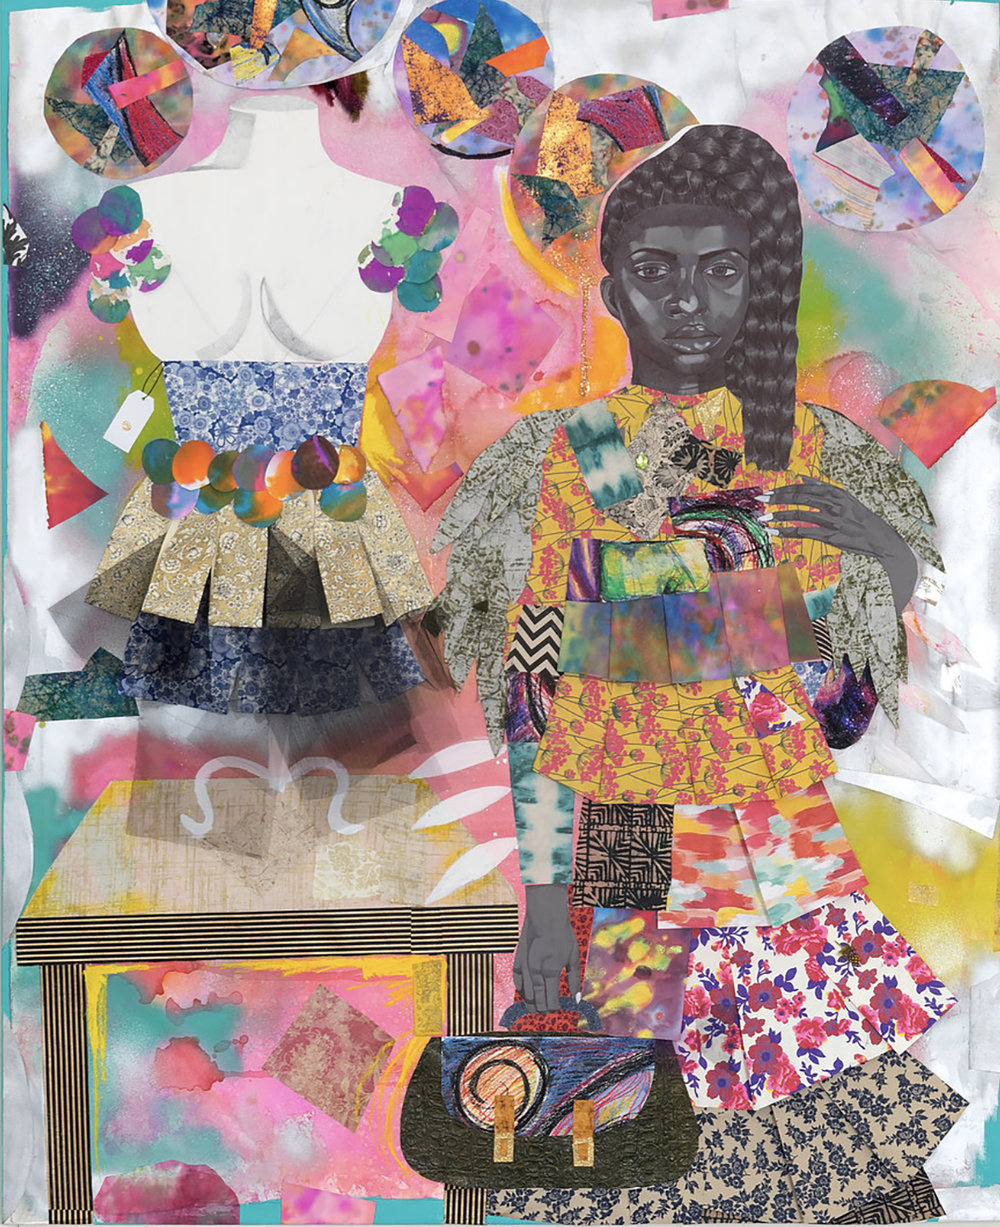 """Girl Standing with Green Alligator Bag Next to Mannequin,"" 2018, 67 x 54 in. Acrylic, spray paint, glitter, ink, tulle and cut paper collage on canvas. Courtesy of Kravets/Wehby Gallery and the artist."